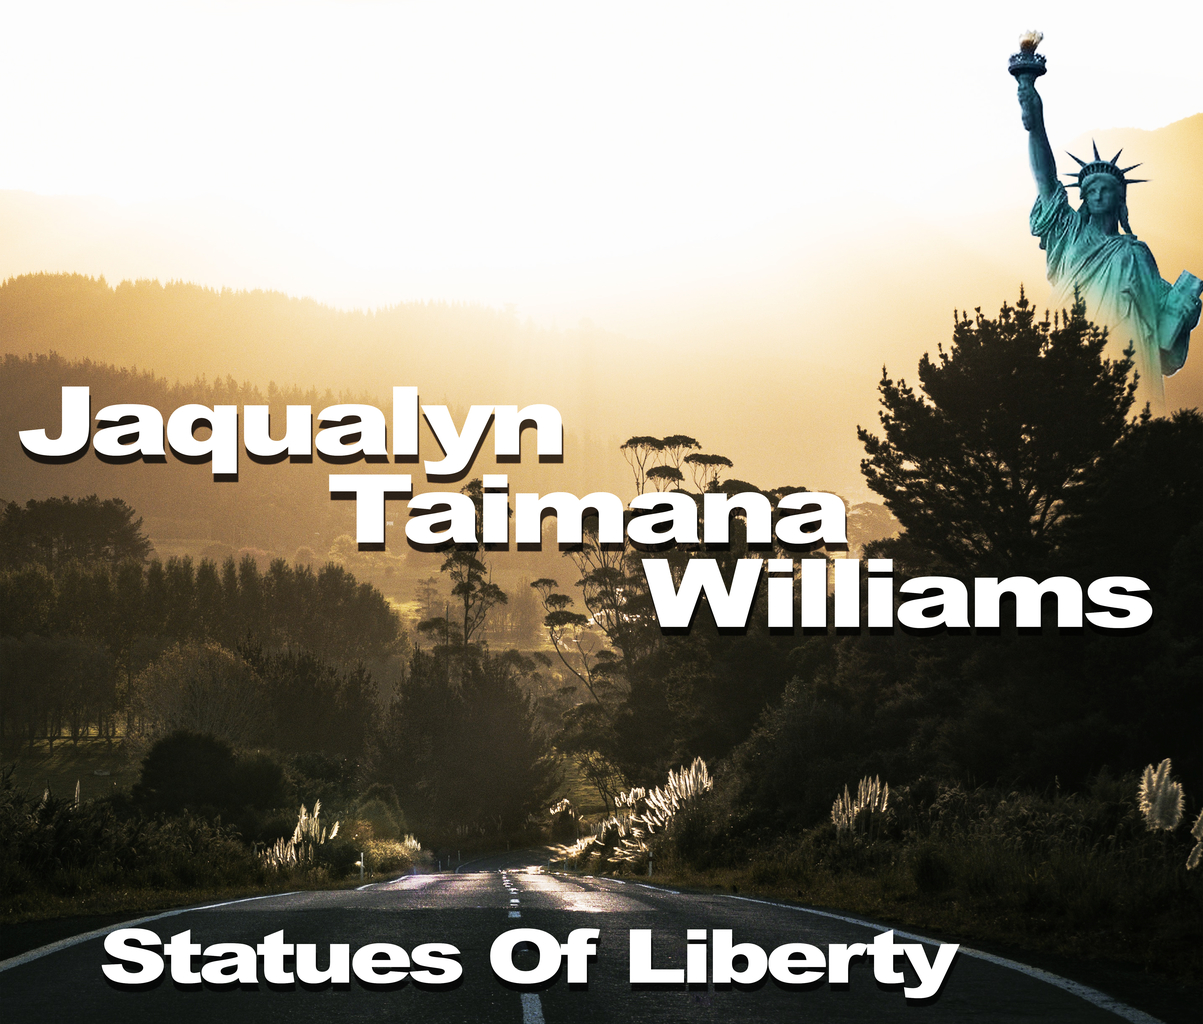 Statues Of Liberty Album Release Party